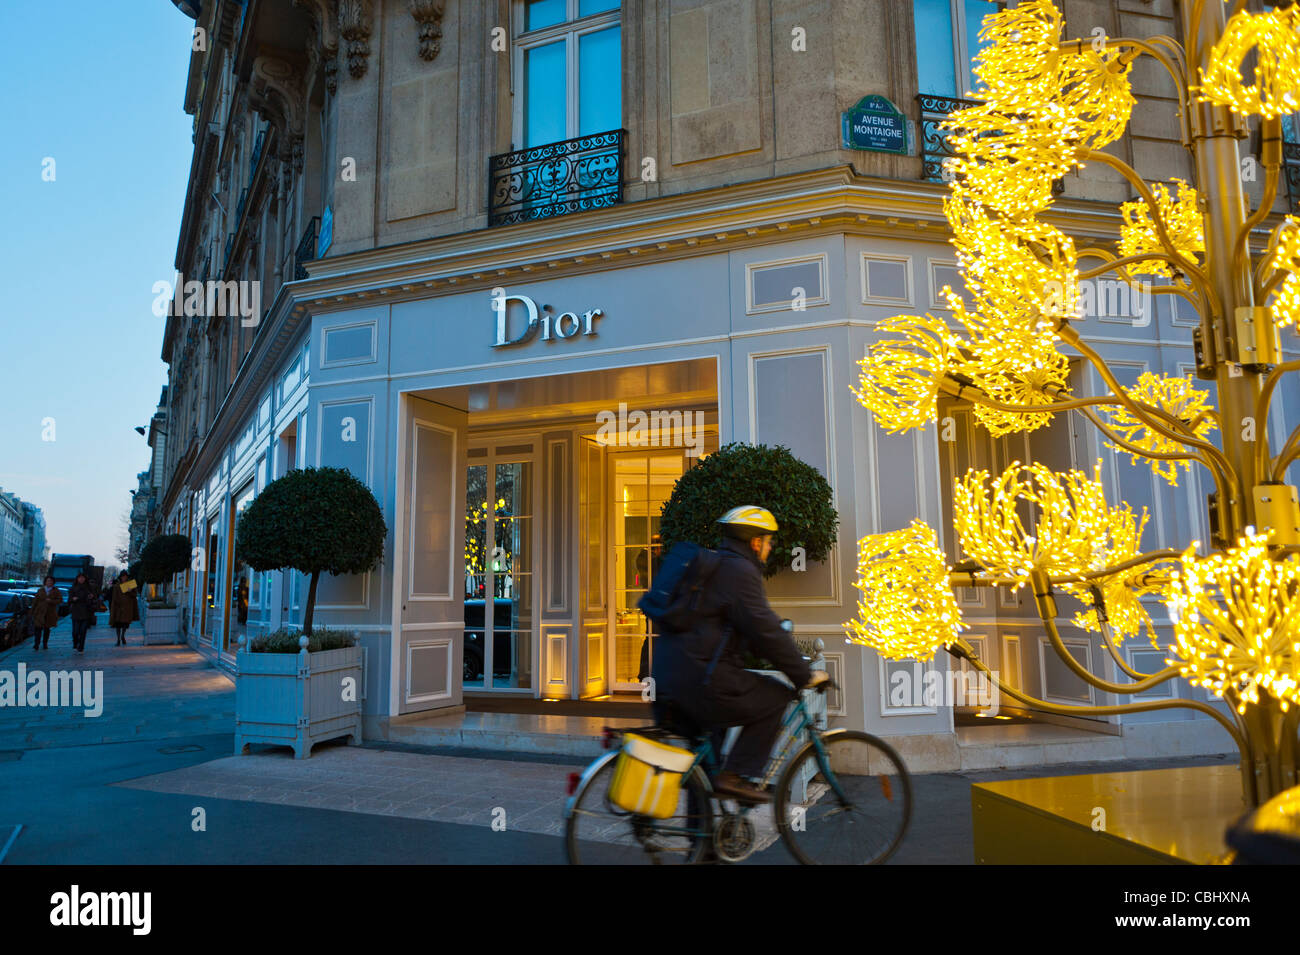 Magasin Led Paris Christian Dior Shop Front Photos And Christian Dior Shop